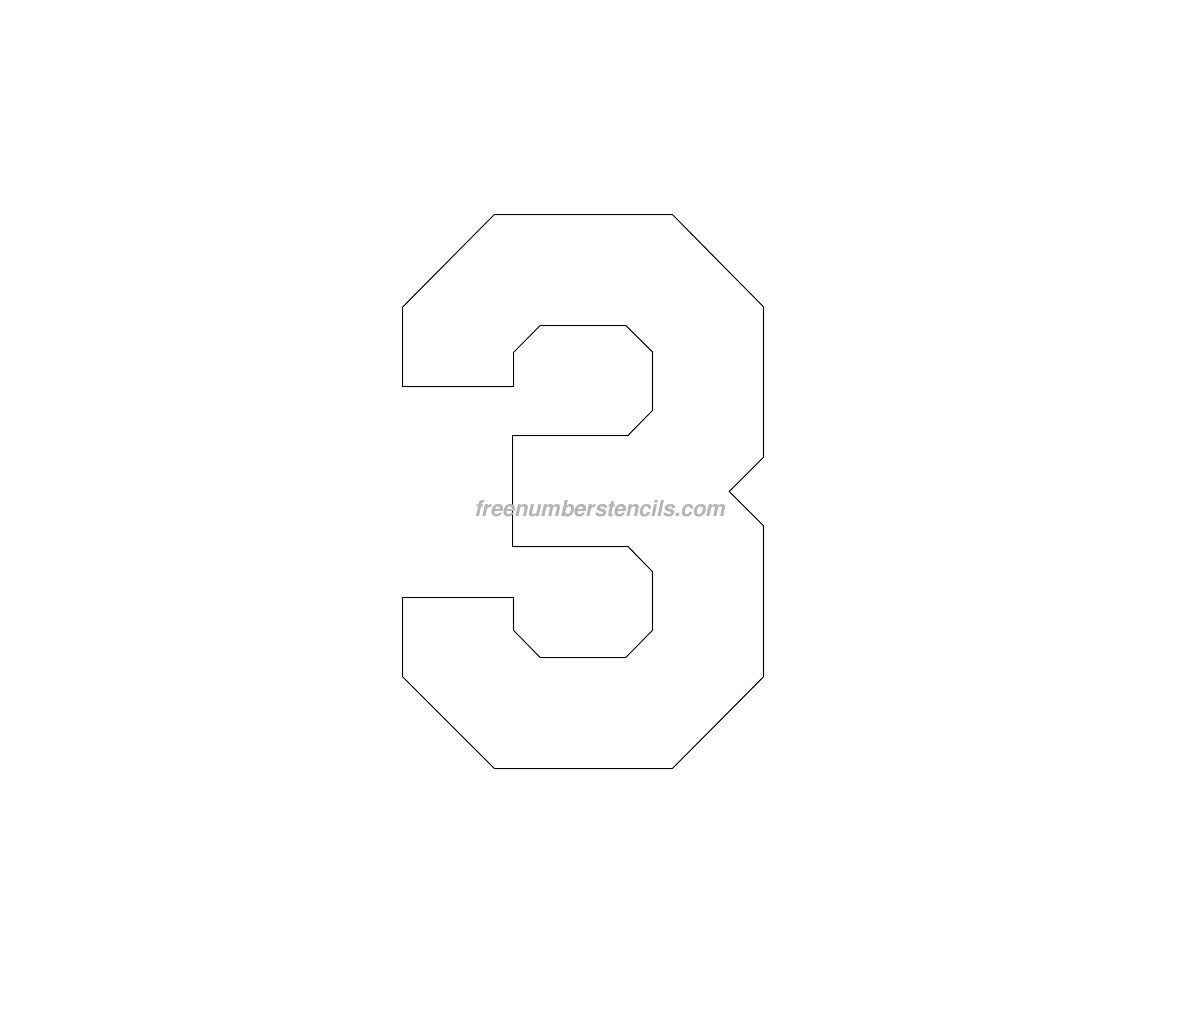 free number templates to print - free jersey printable 3 number stencil